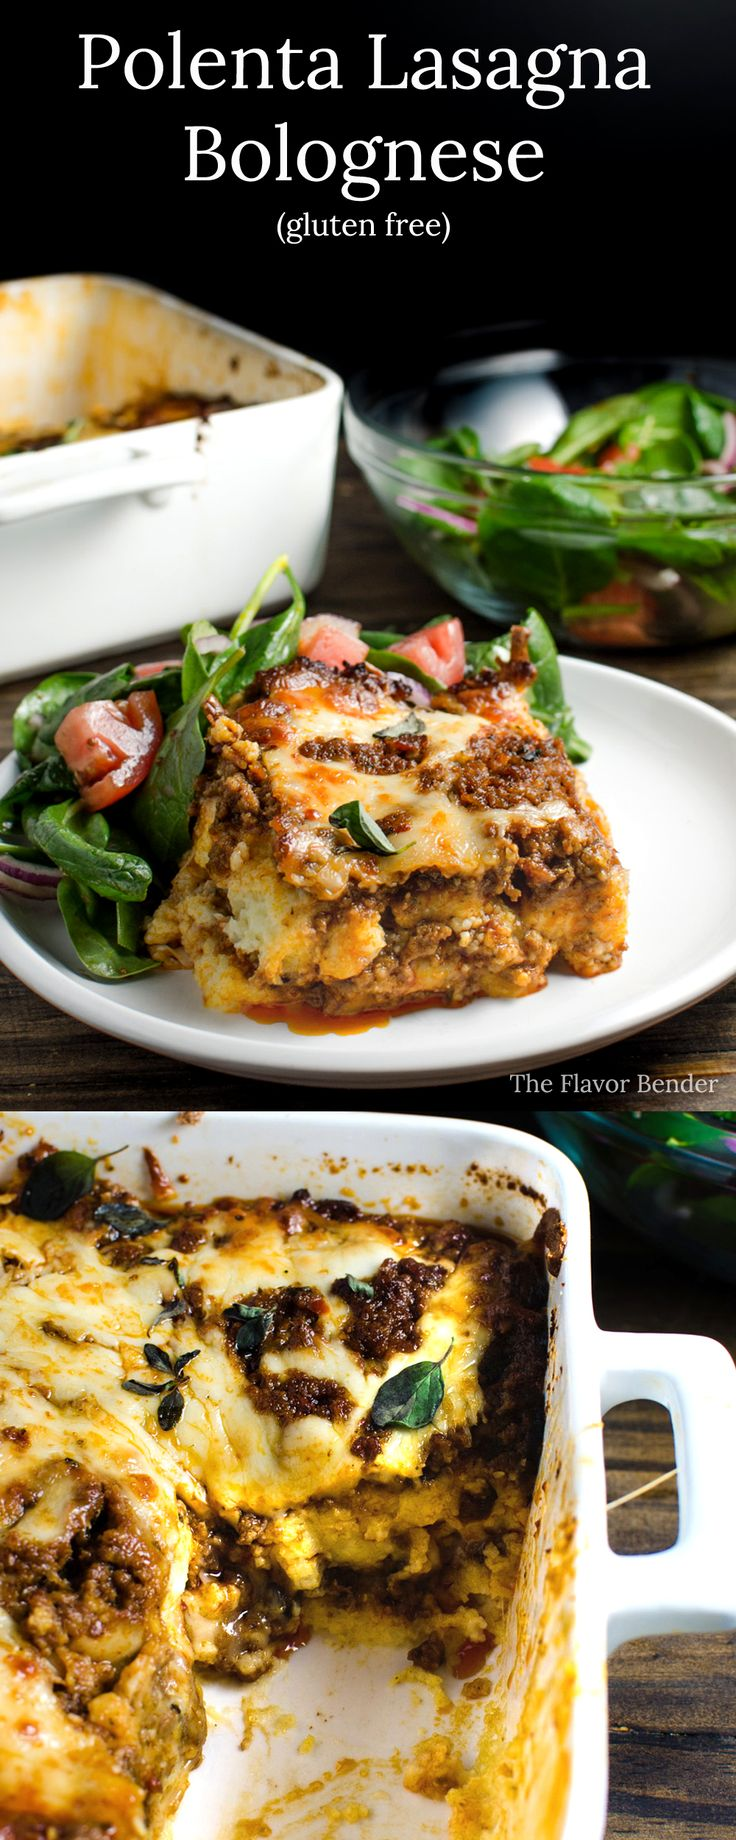 Polenta Lasagna Bolognese -  Made with alot of love and #simmeredintradition #ragu